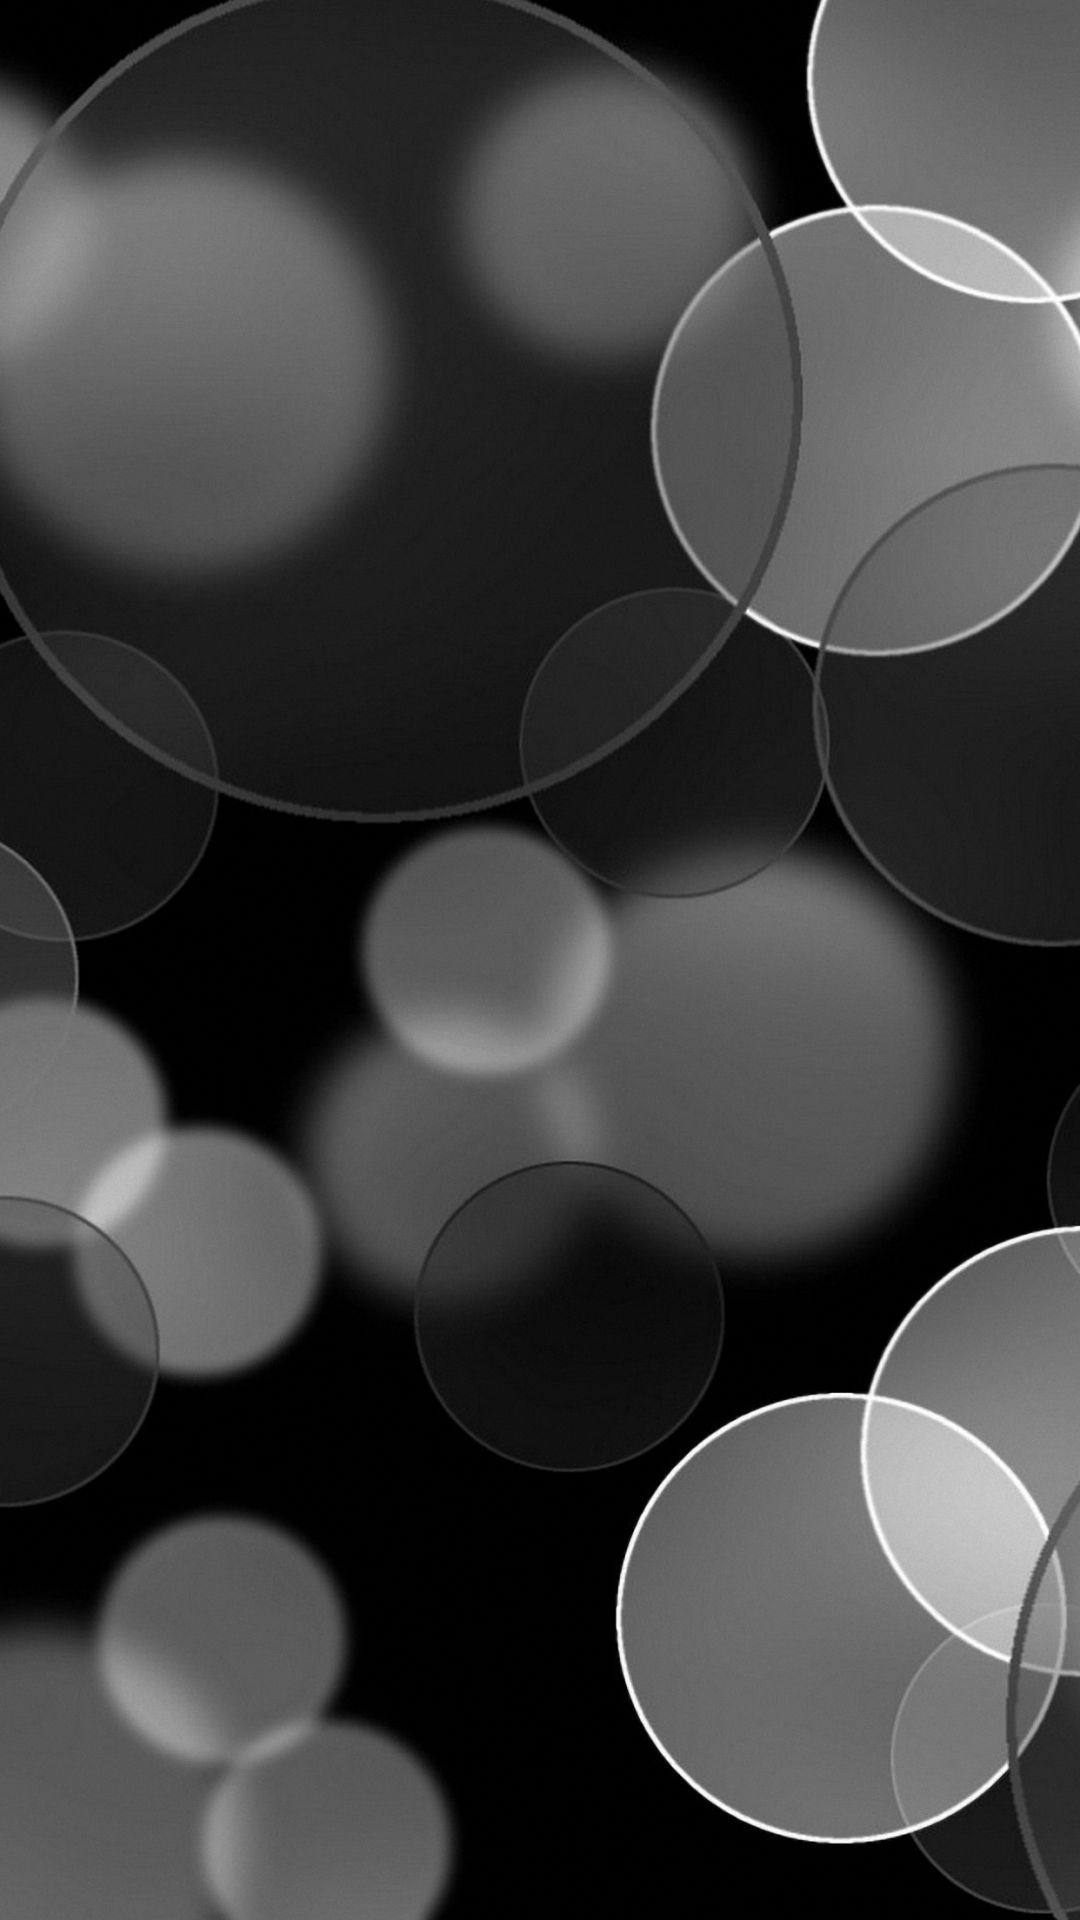 Grey Abstract Android Wallpaper Hd For Mobile And Tablets Papel